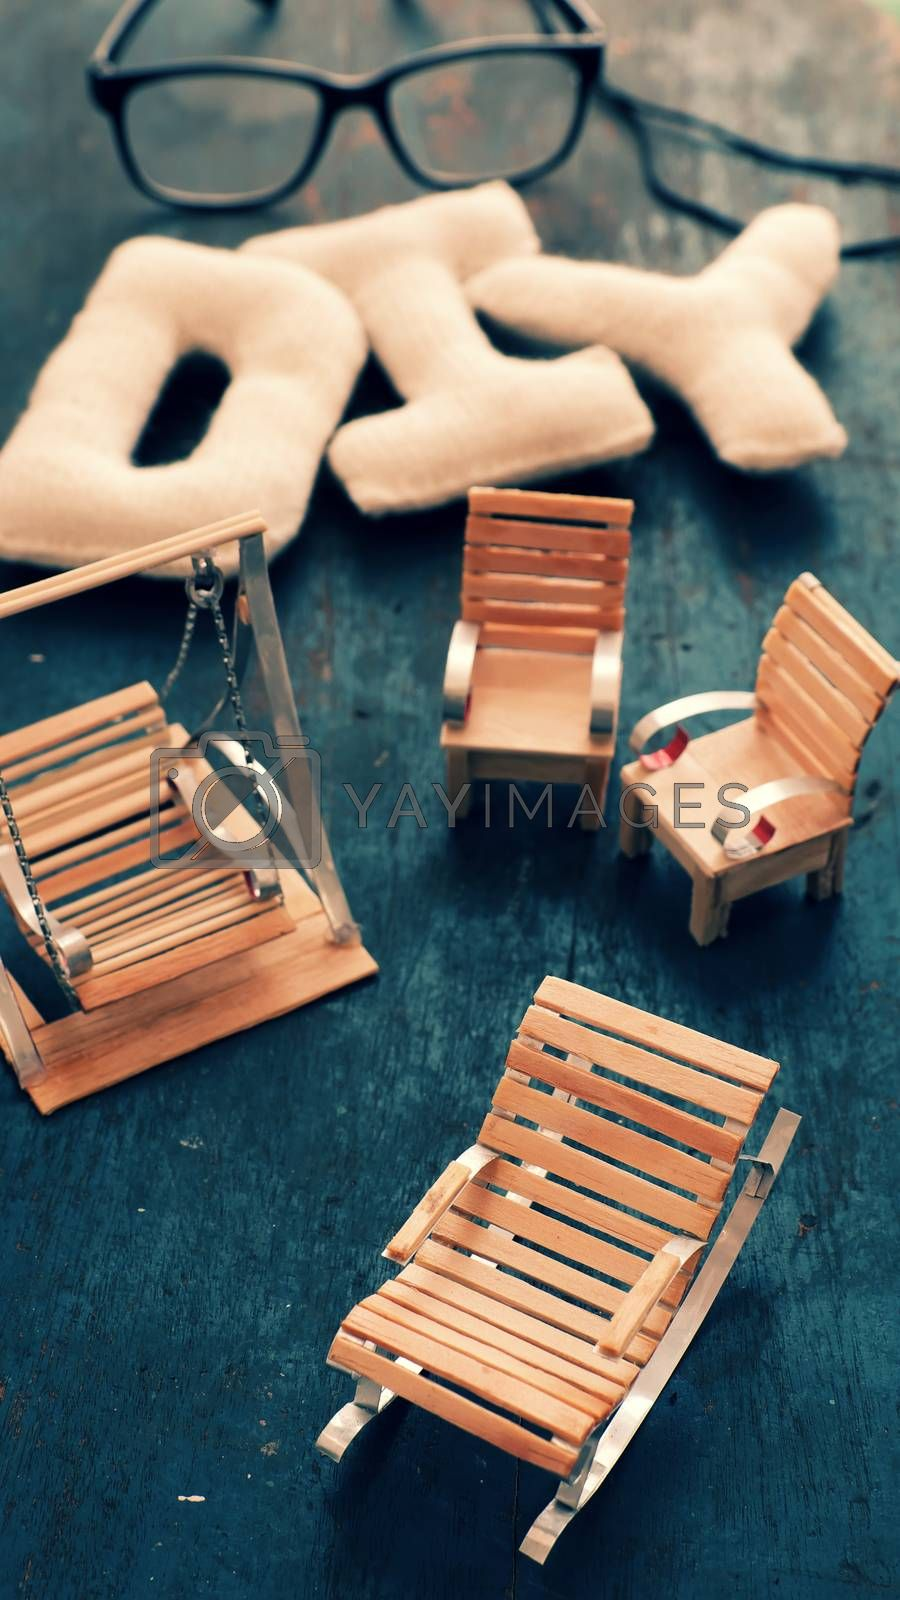 Amazing miniature handmade product for interior design, mini furniture make from wood stick on wooden background, small swing, chair so cute and diy knitted alphabet